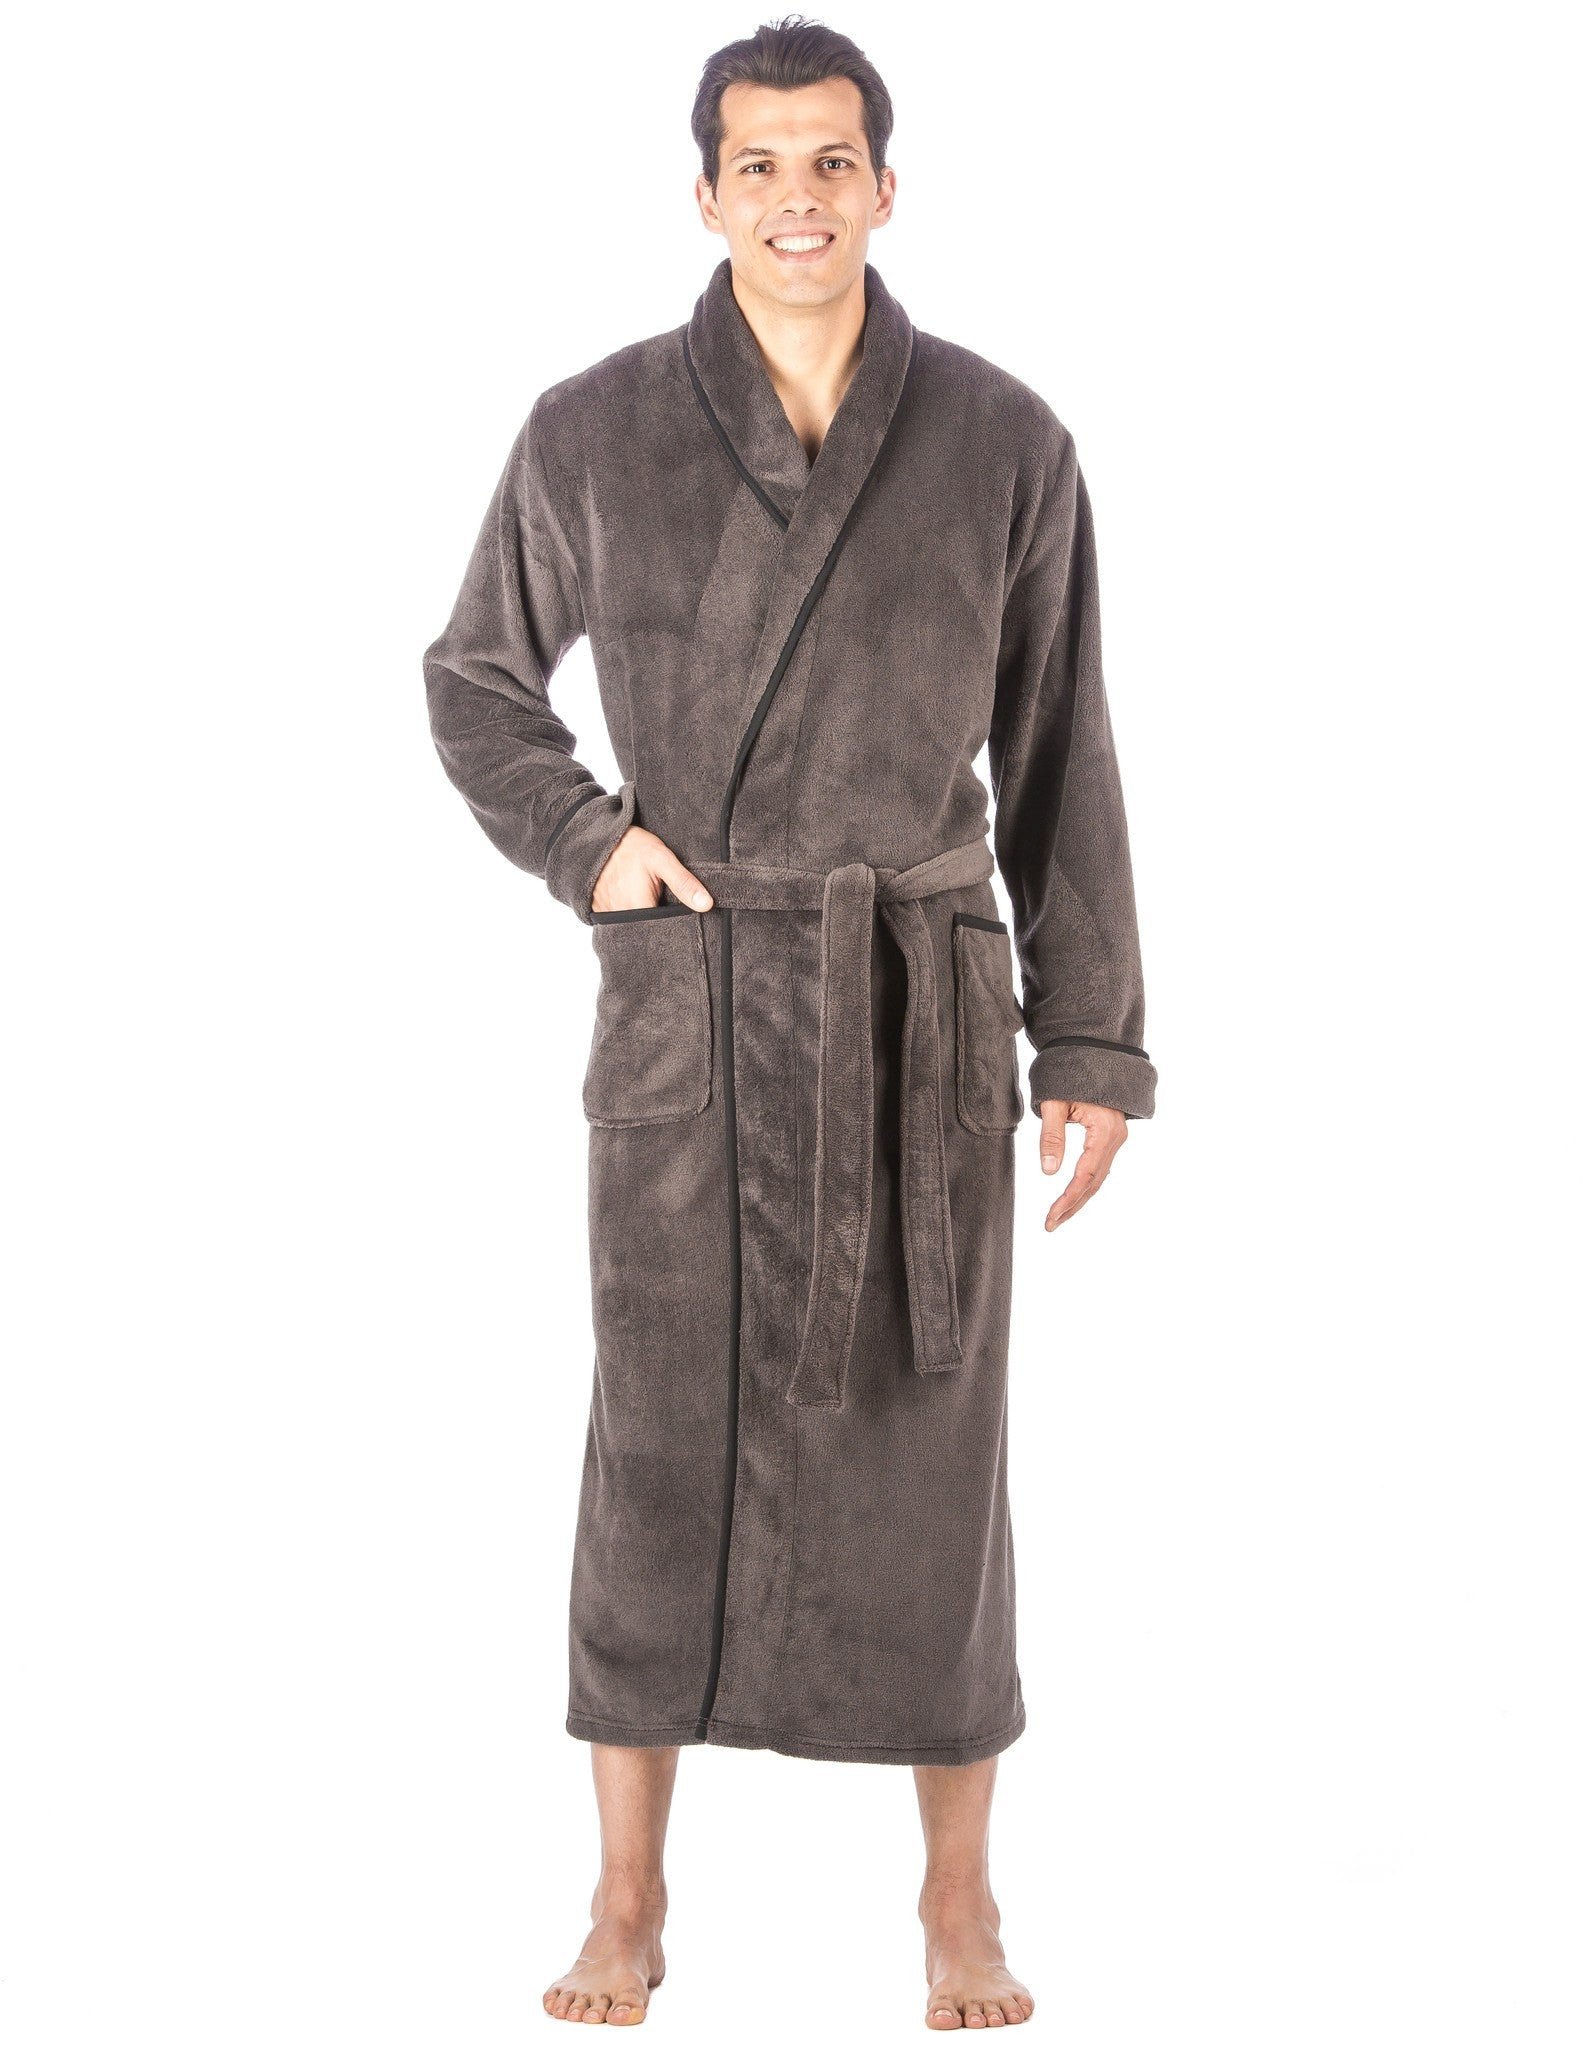 Men's Premium Coral Fleece Full Length Plush Spa/Bath Robe